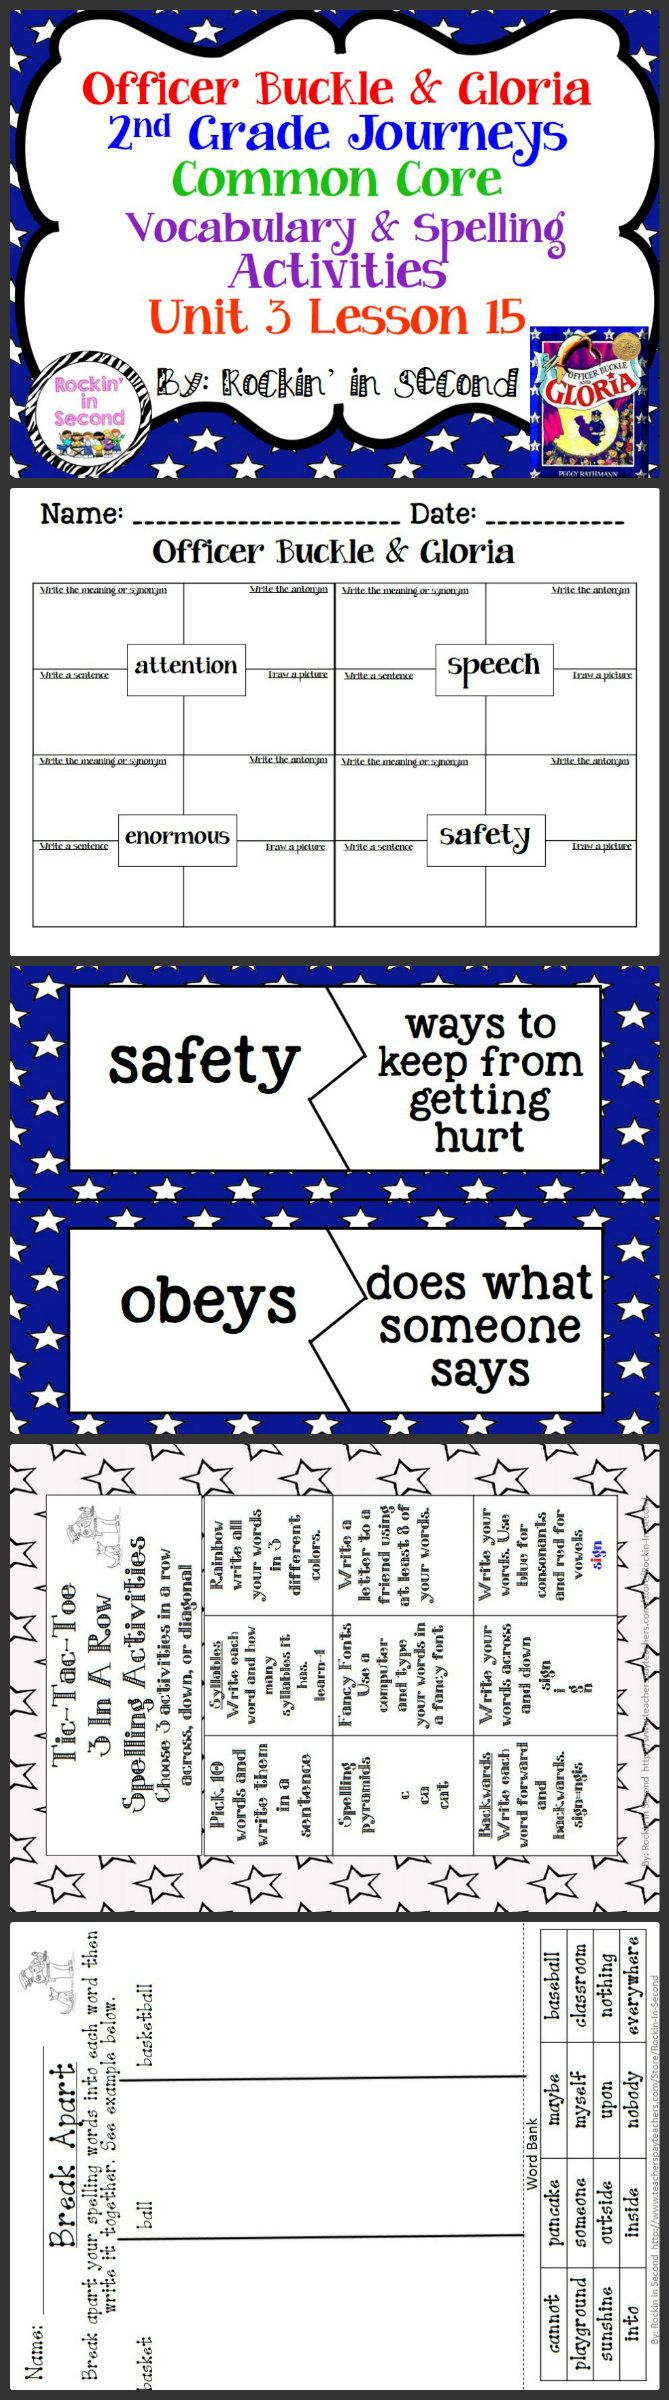 worksheet Officer Buckle And Gloria Worksheets 19 best officer buckle and gloria images on pinterest journeys spelling vocab activities lesson 15